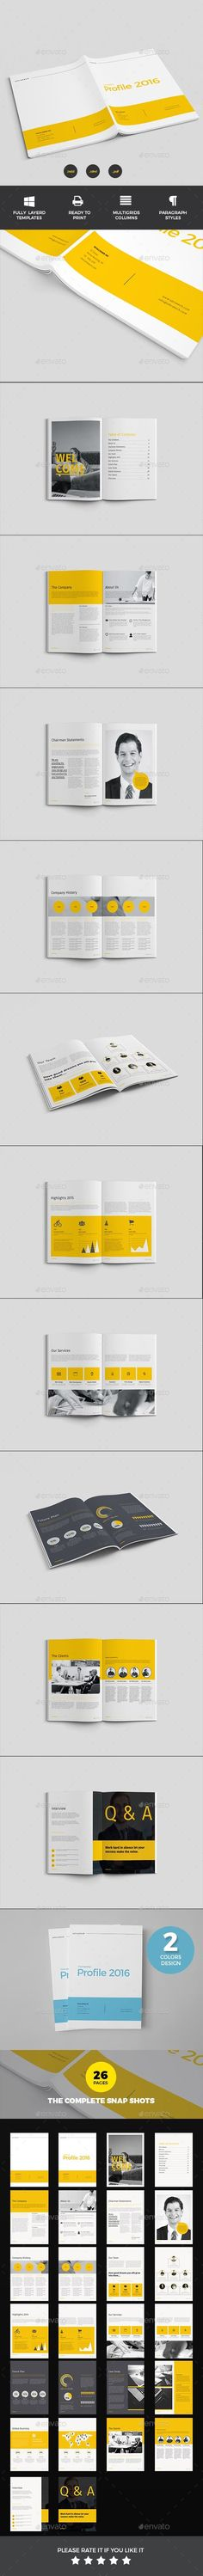 Company Profile Brochure Template InDesign INDD - 24 Pages 画册